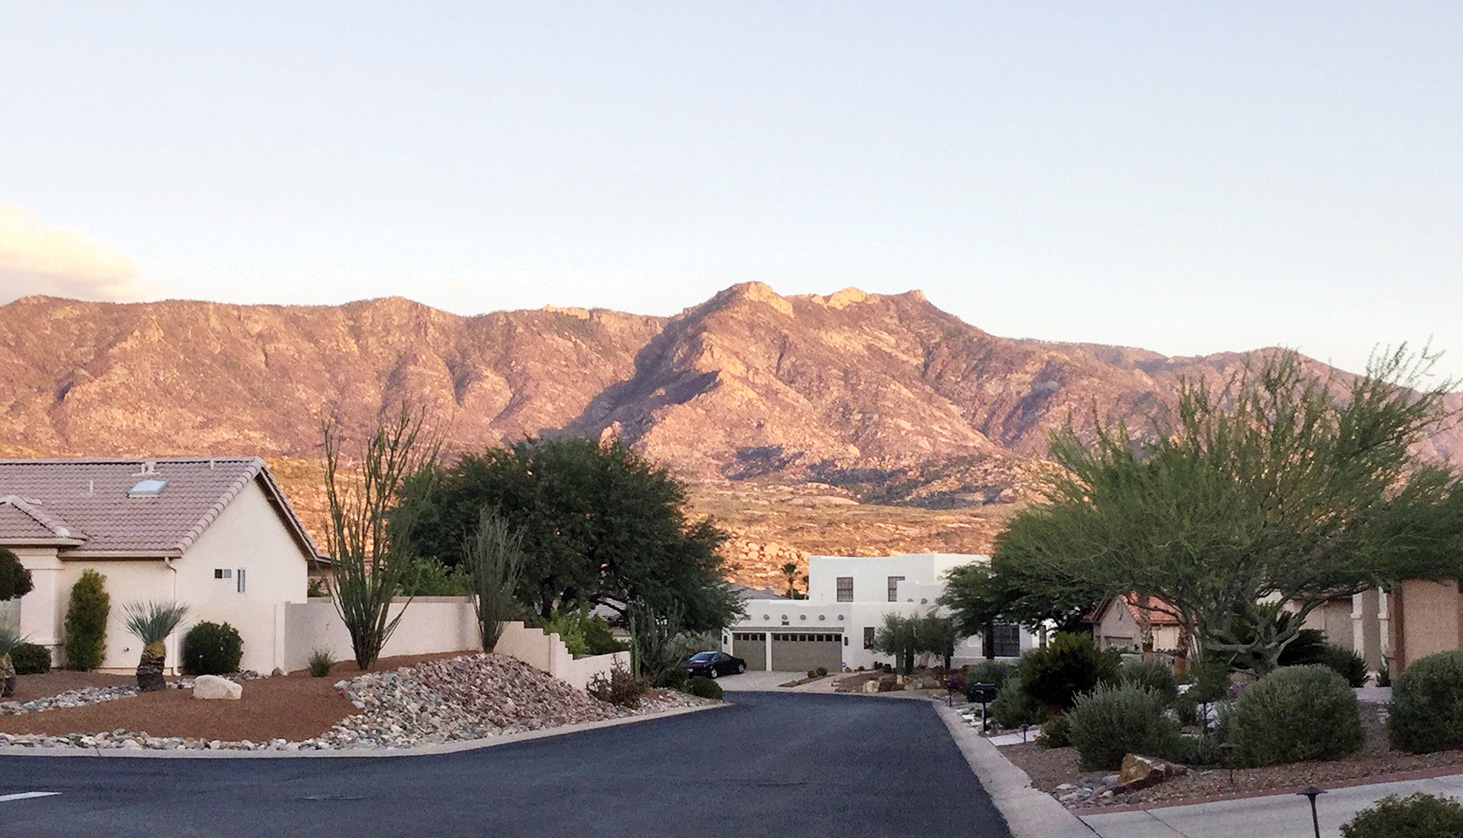 The beautiful Catalina Mountains have a golden glow near sunset.